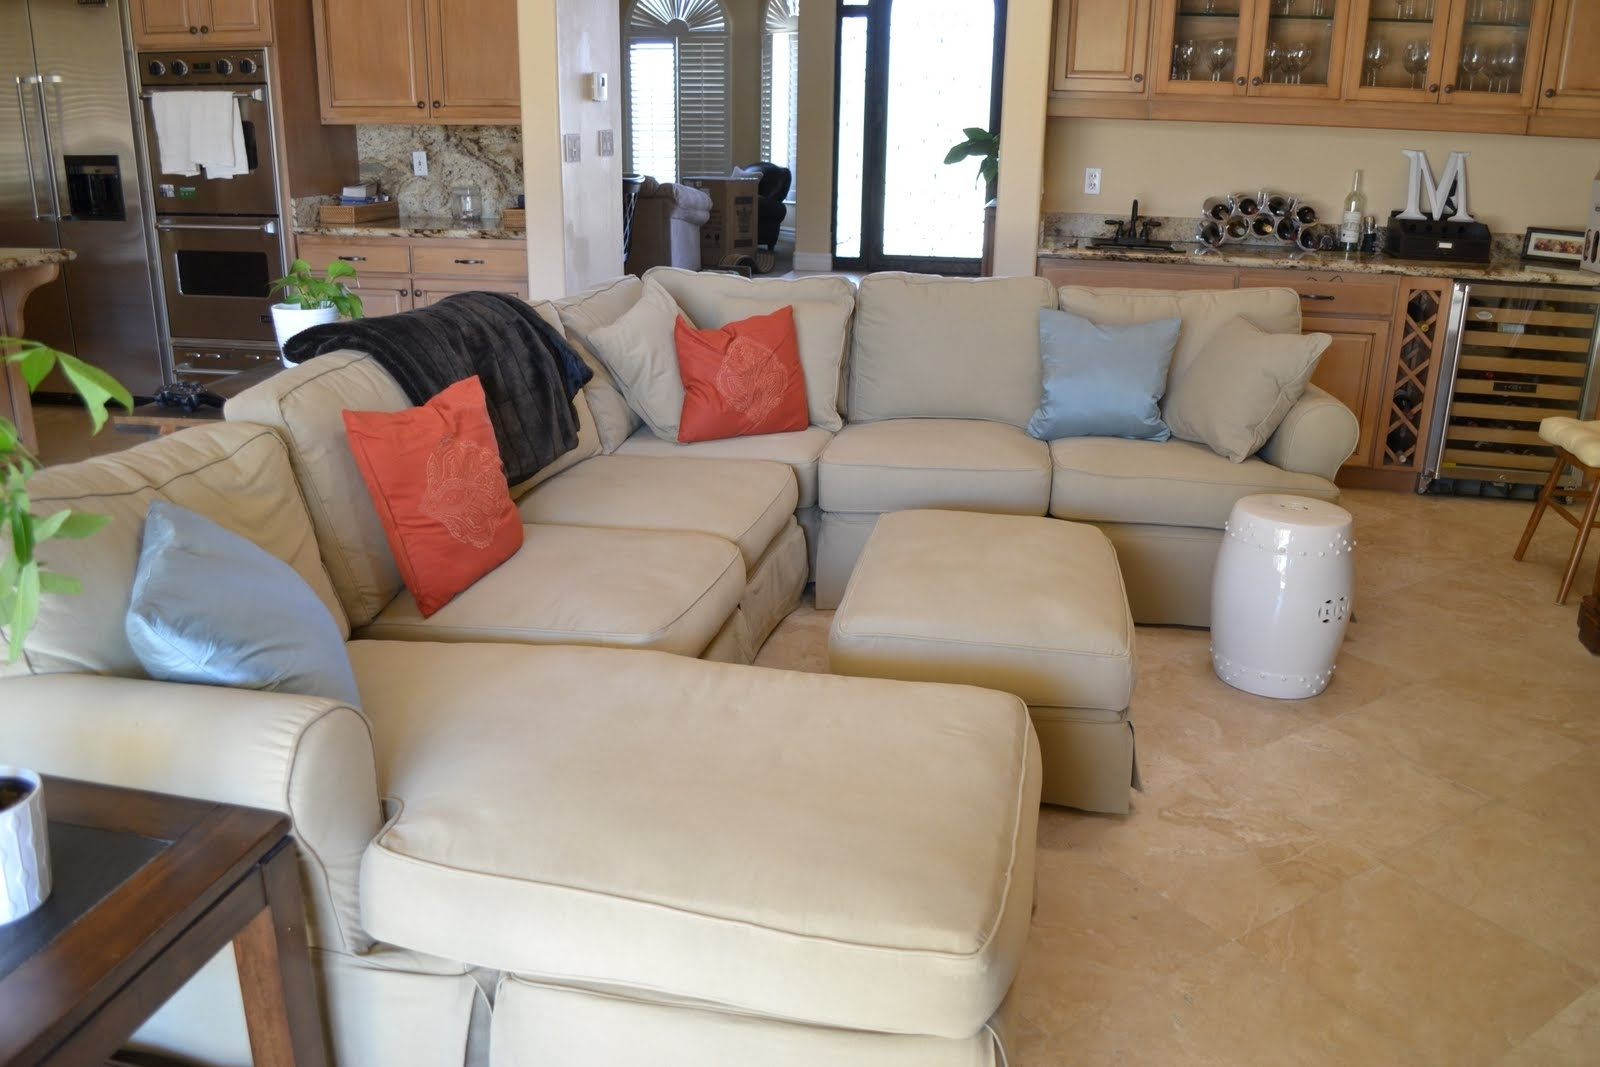 Slipcovers For Sectional Sofas With Chaise Inside Preferred 3 Piece Sectional Slipcovers — Cabinets, Beds, Sofas And (View 8 of 15)